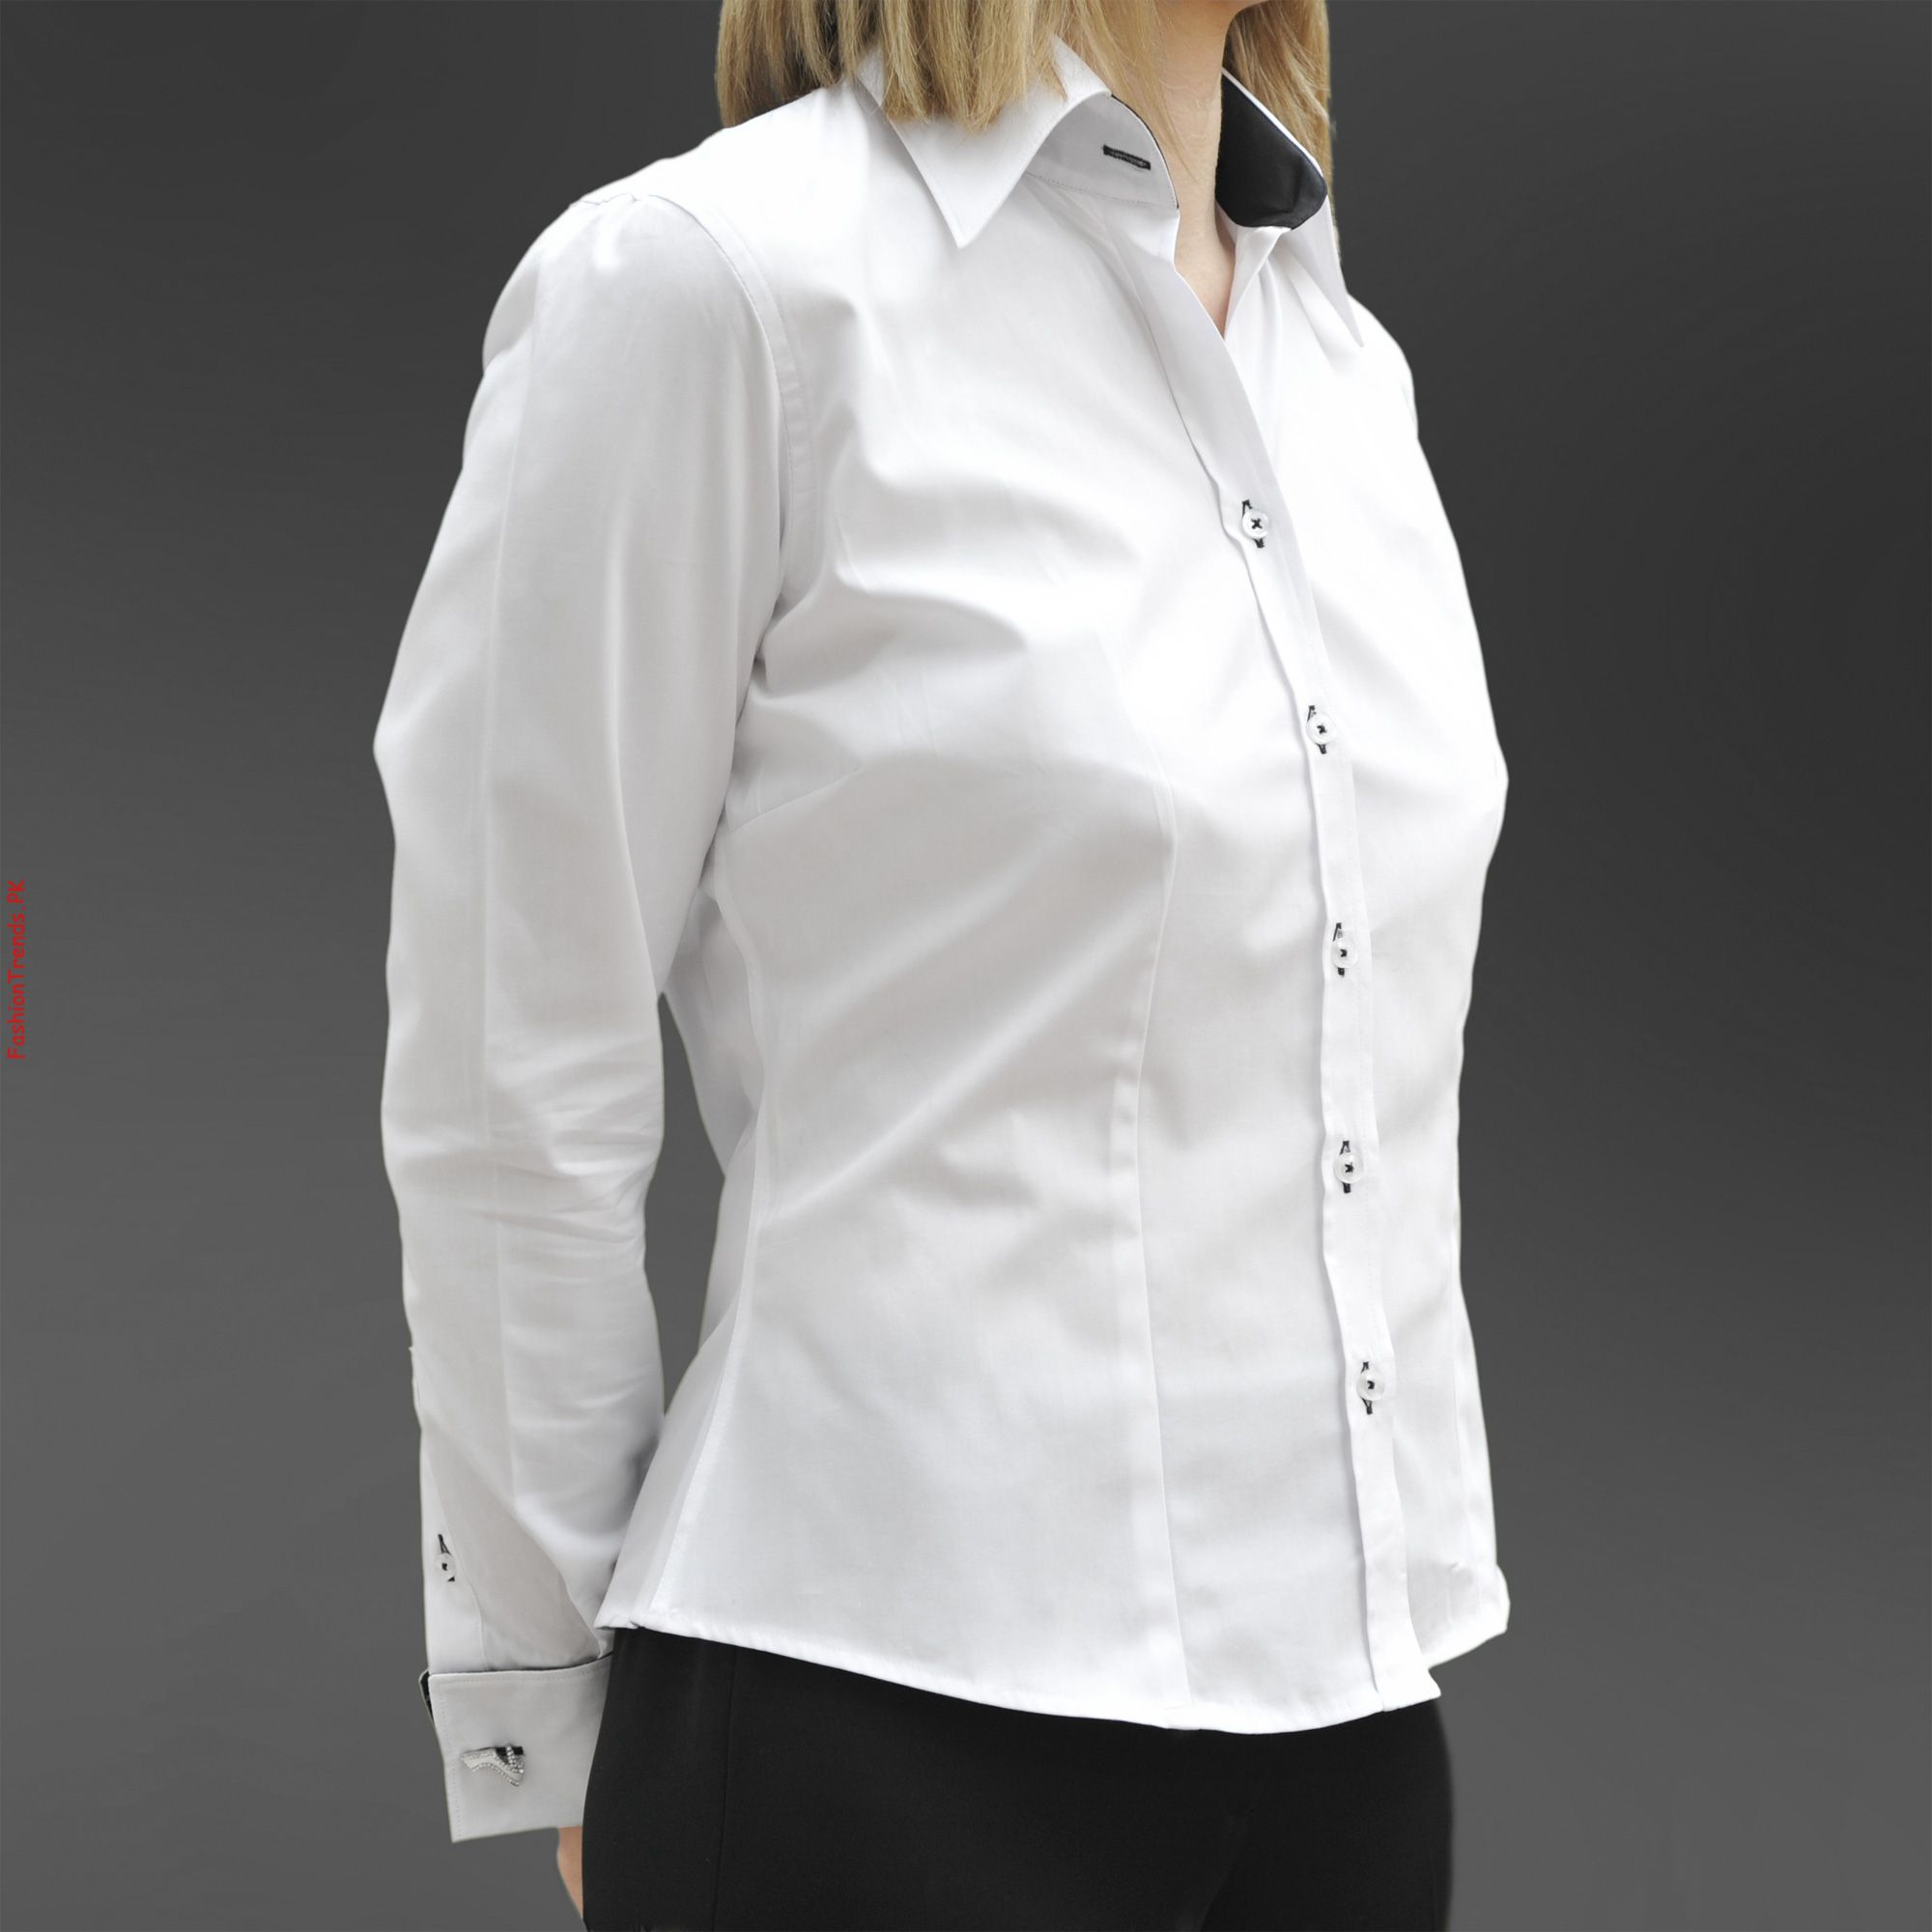 Find great deals on eBay for designer shirts for women. Shop with confidence.